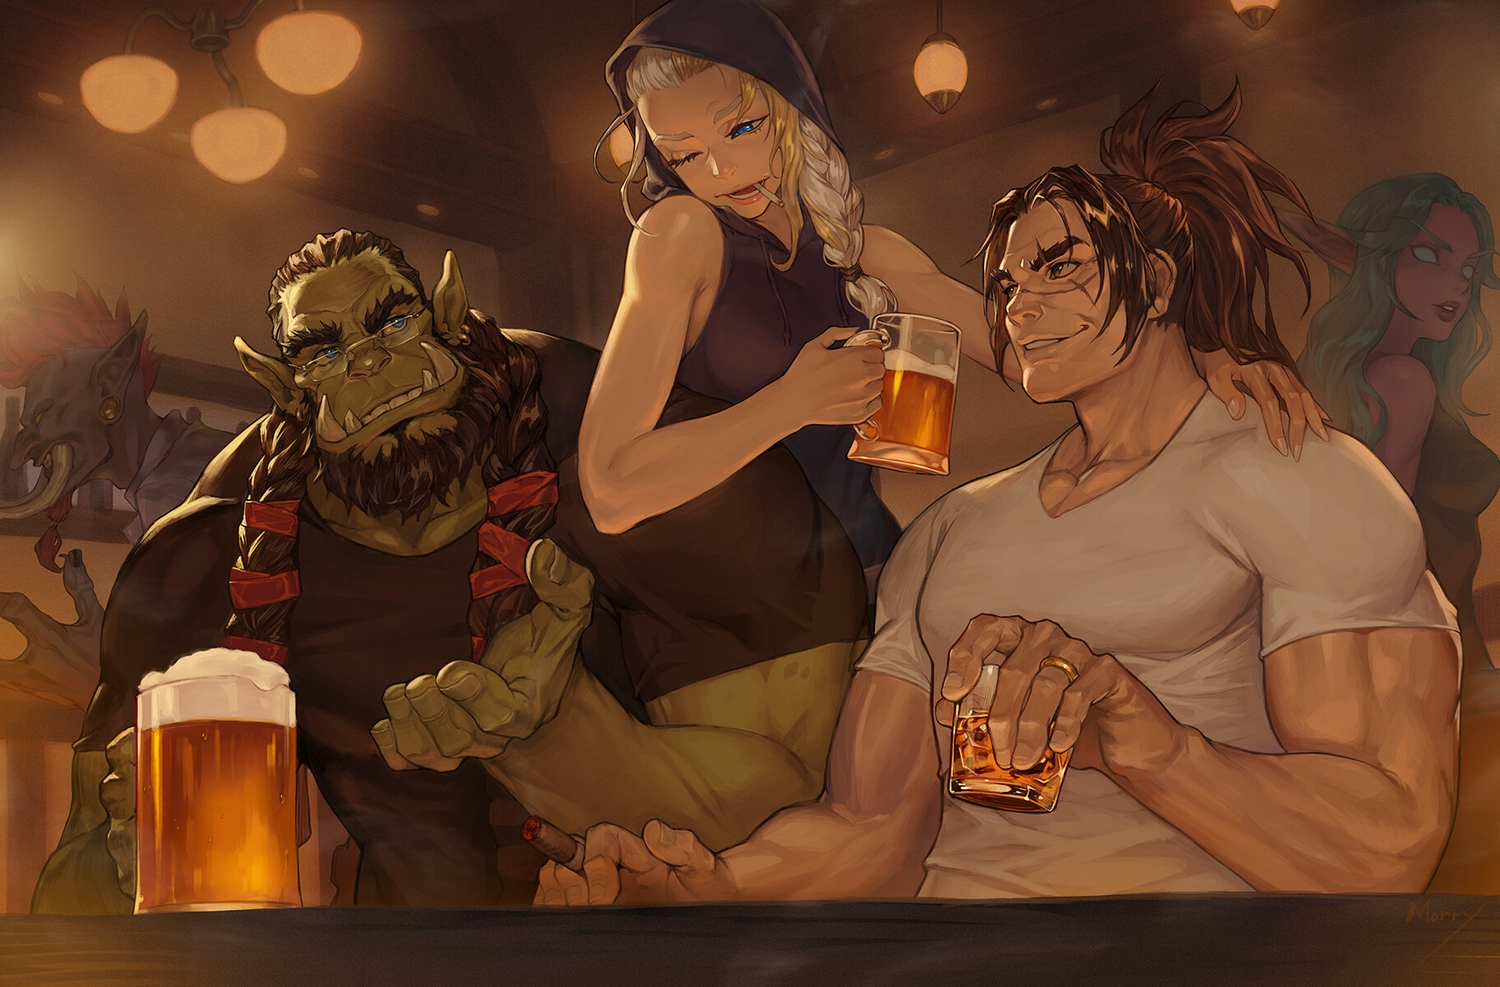 black_hair blonde_hair blue_eyes braids brown_hair cigarette drink glasses green_hair group hoodie long_hair male morry_evans pointed_ears ponytail red_eyes scar signed smoking twintails wink world_of_warcraft